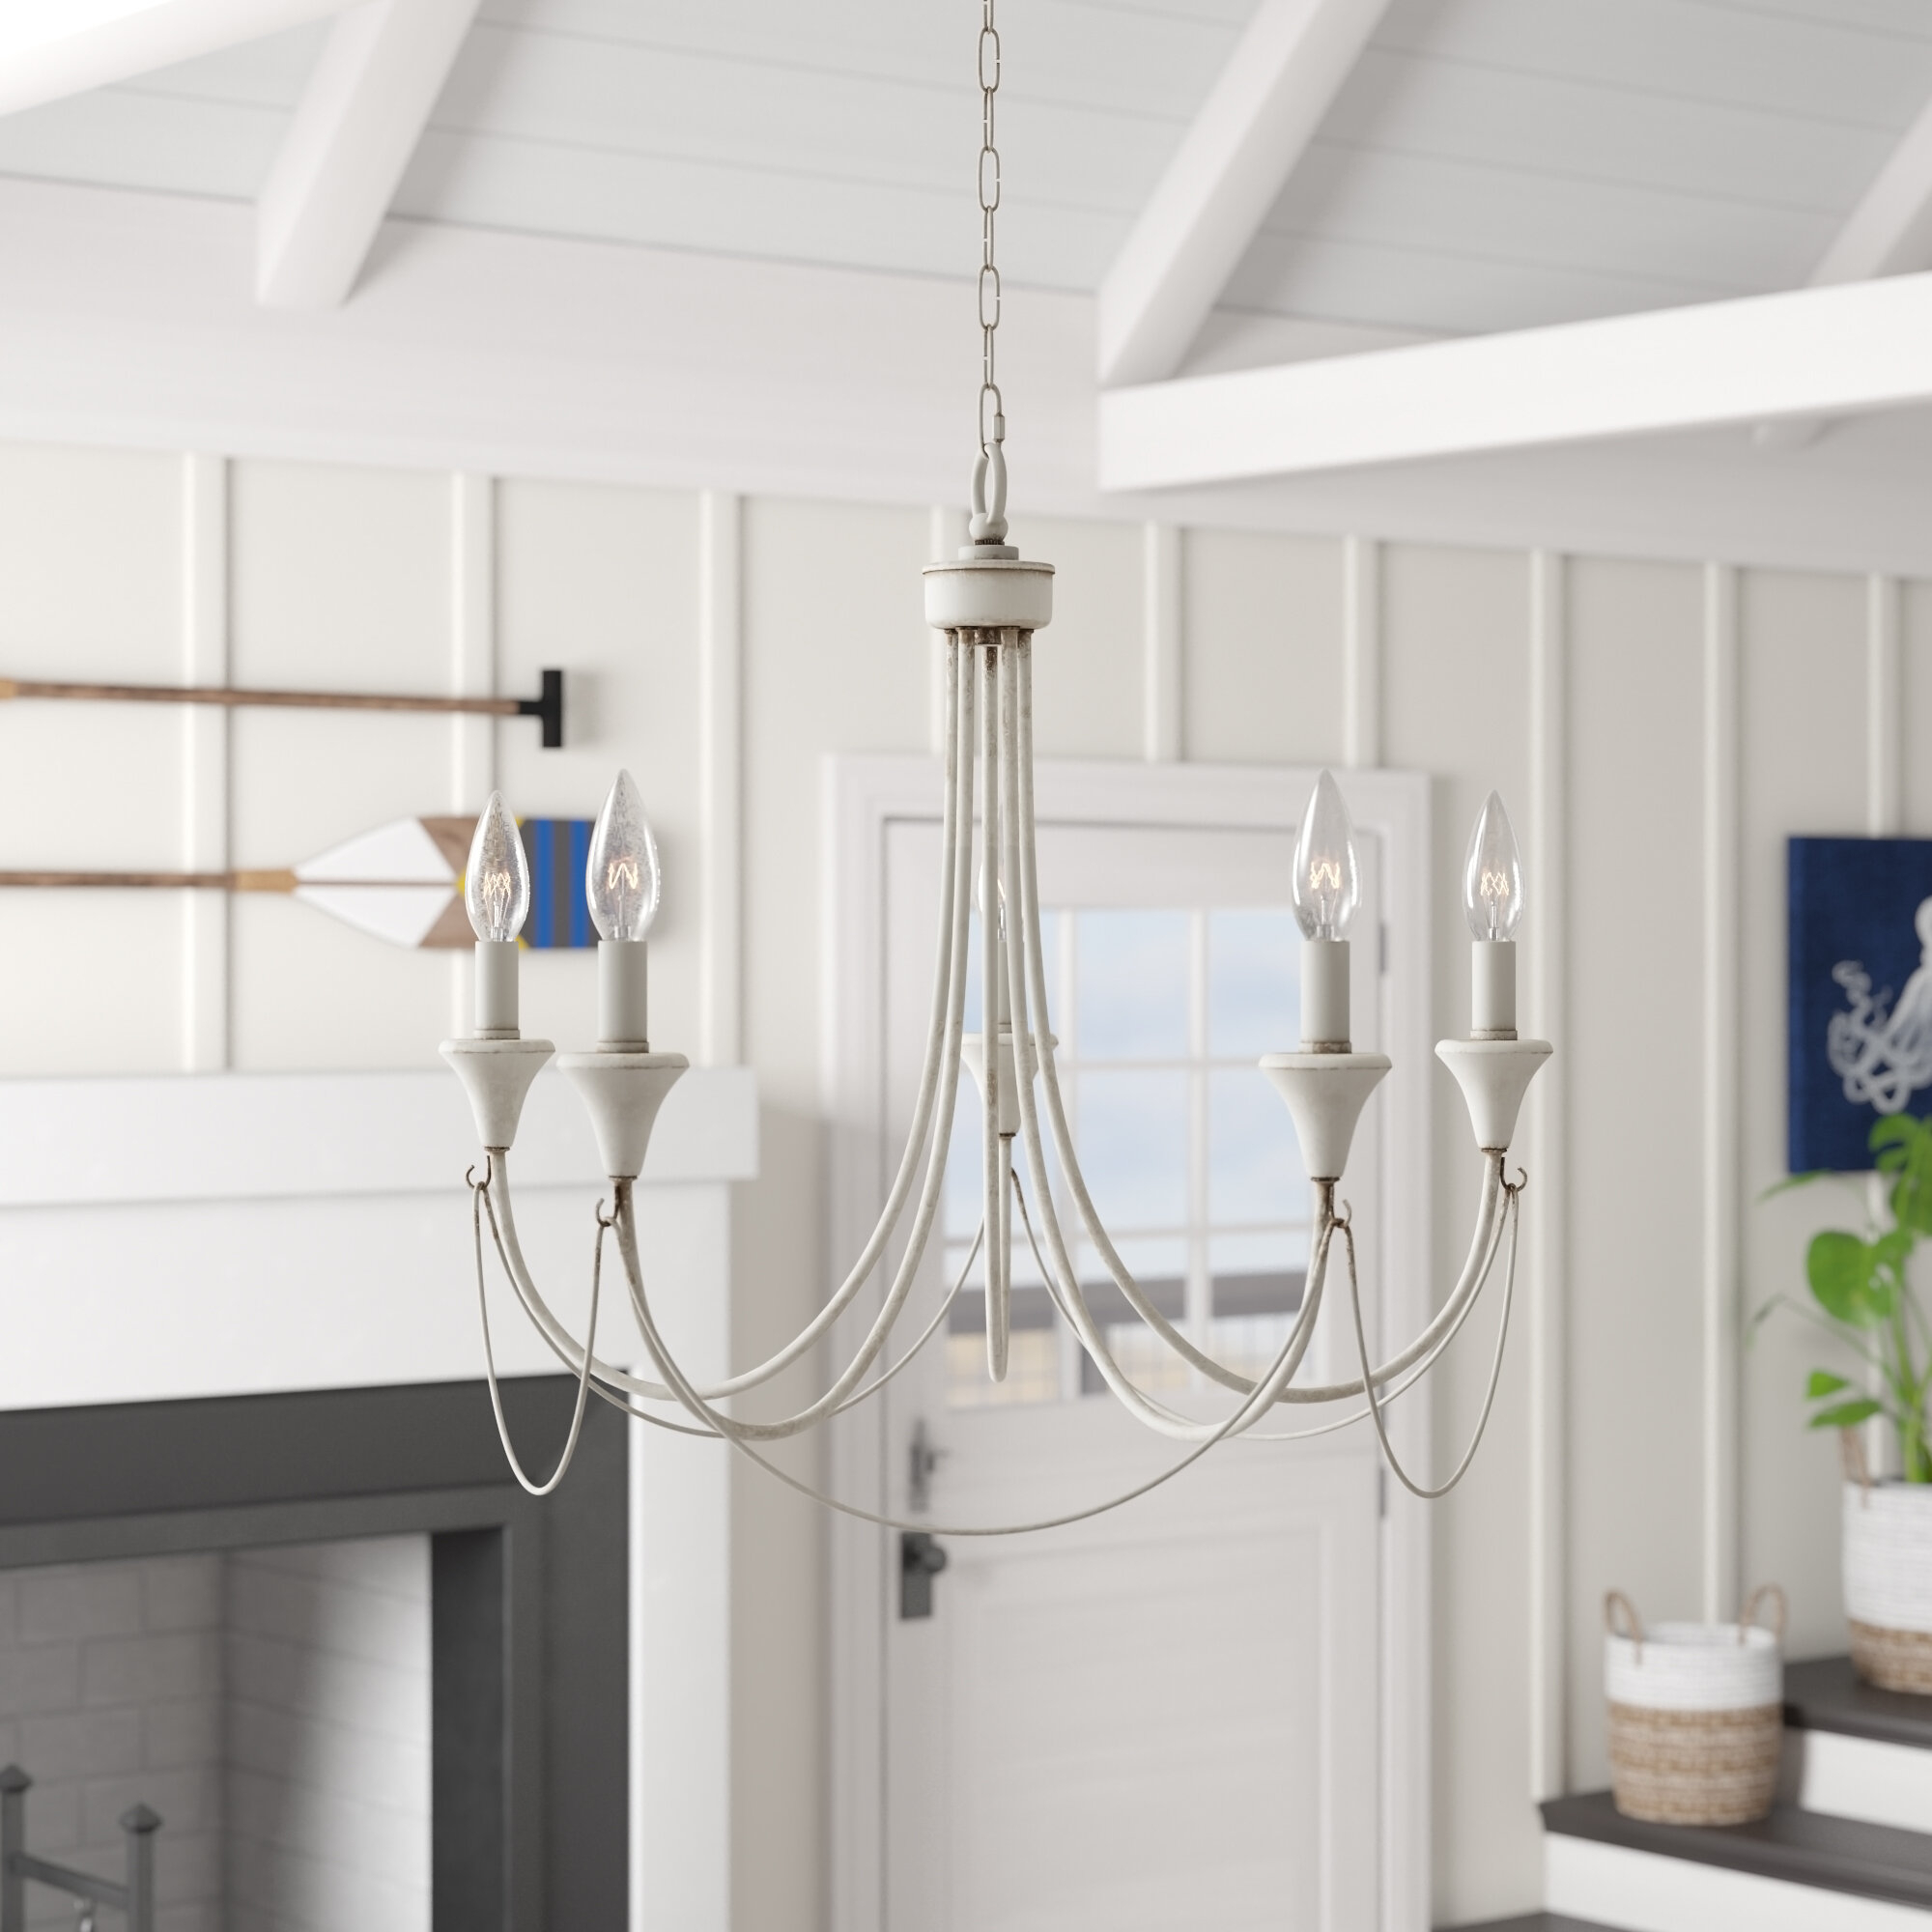 Breakwater Bay Walczak 5-Light Chandelier regarding Corneau 5-Light Chandeliers (Image 8 of 30)